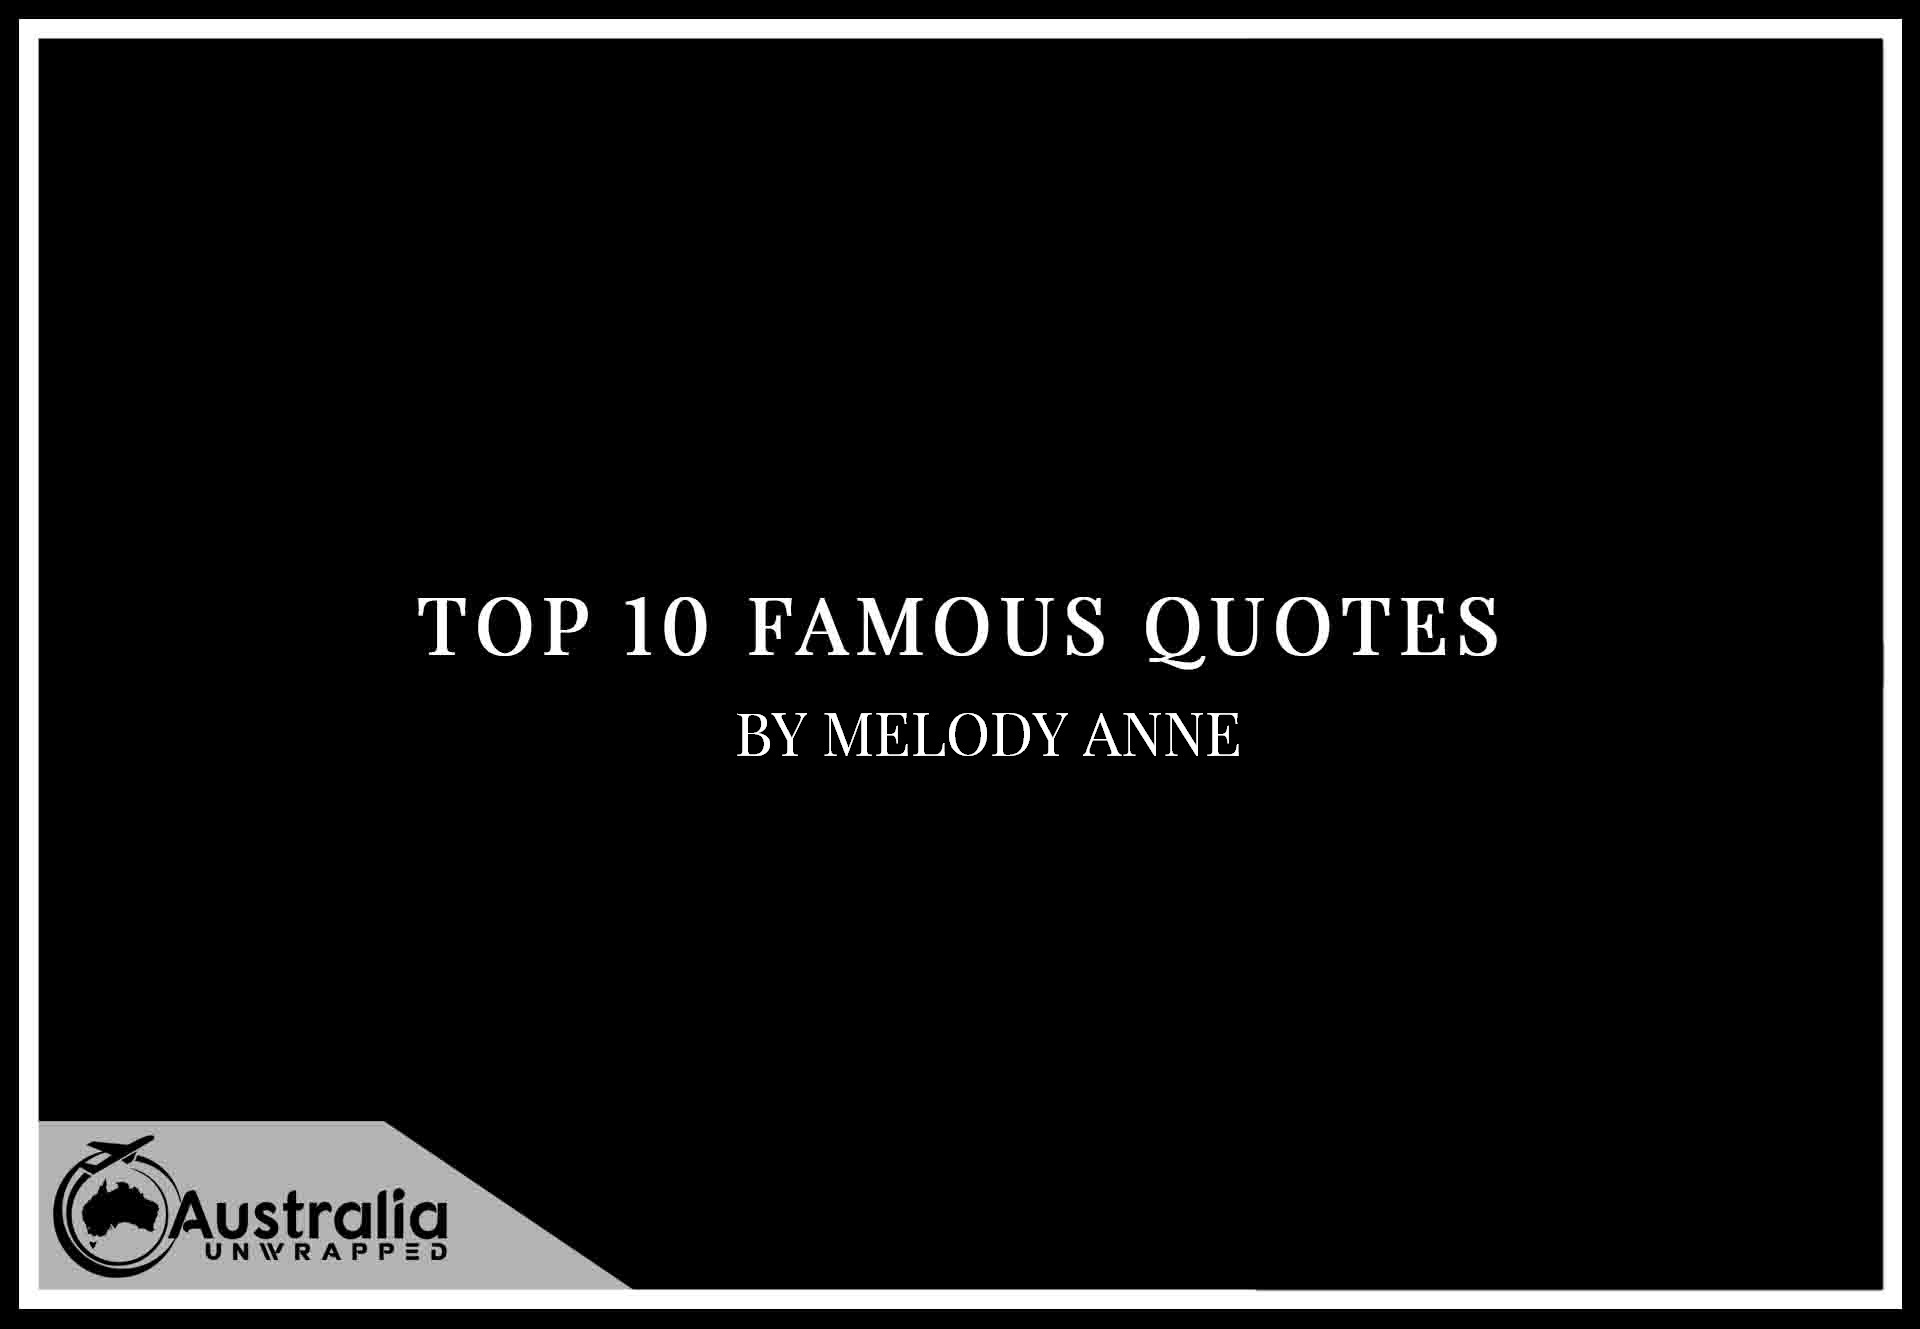 Top 10 Famous Quotes by Author Melody Anne